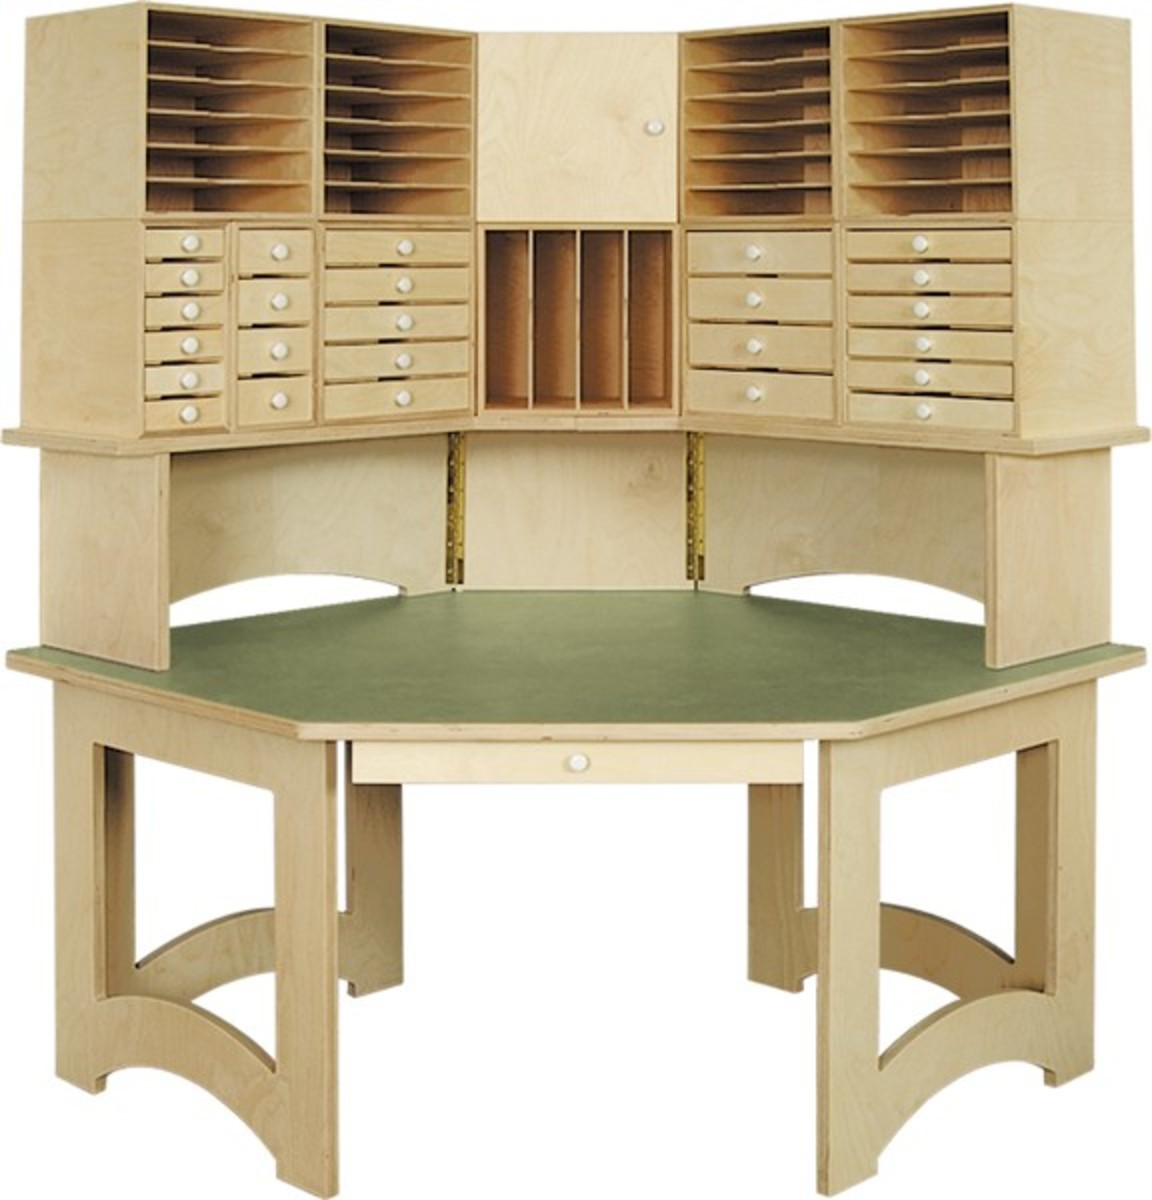 scrapbook-furniture-for-organizing-and-storing-your-supplies